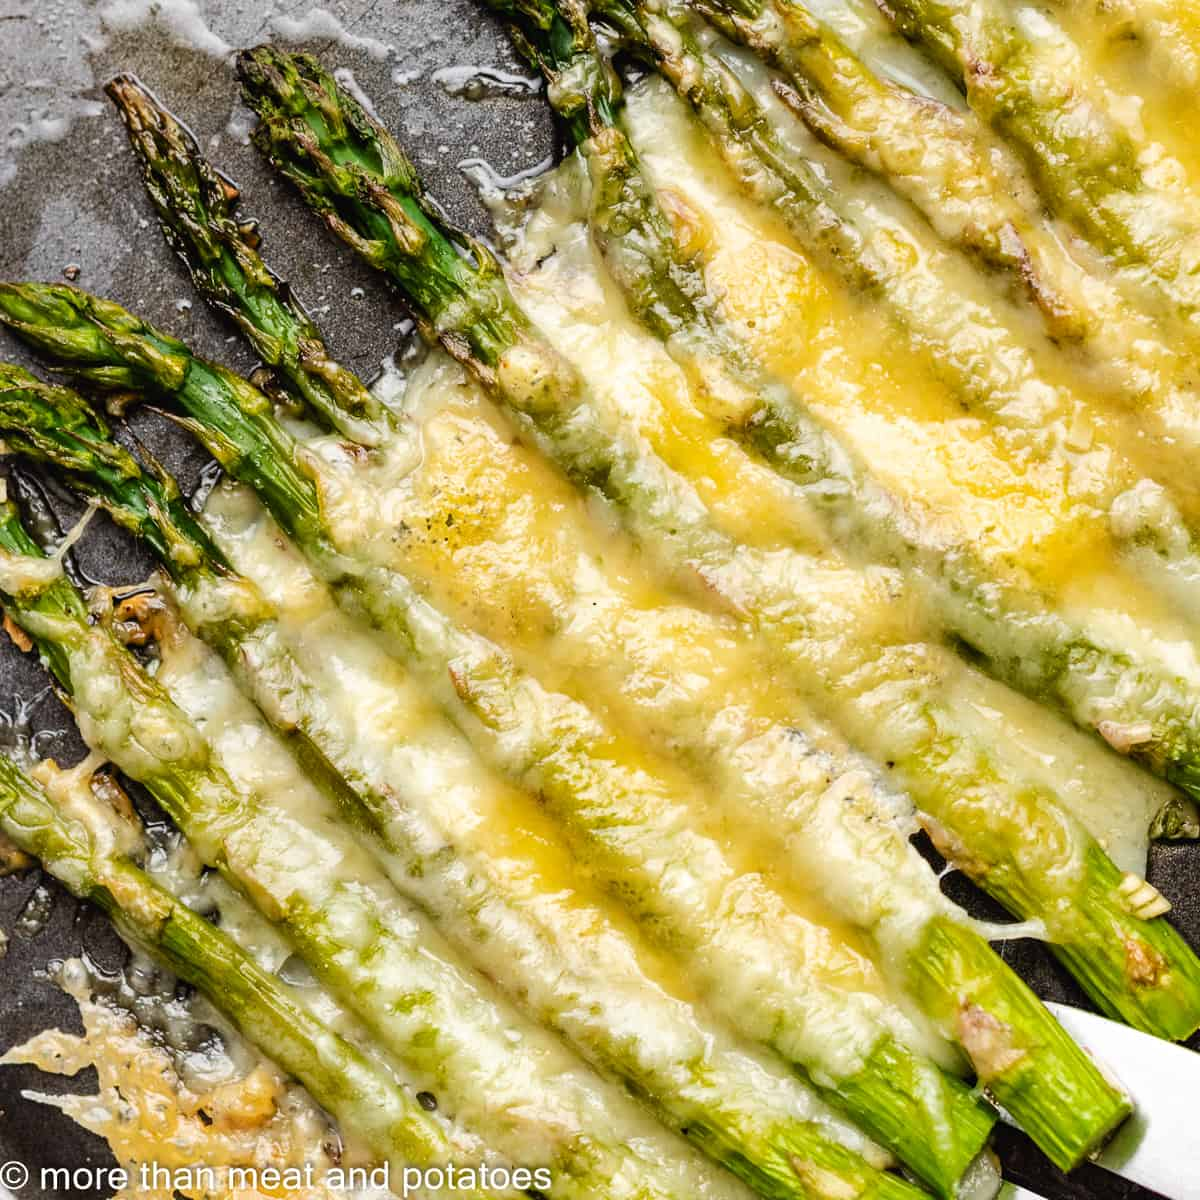 A close-up view of the cheesy garlic roasted asparagus.